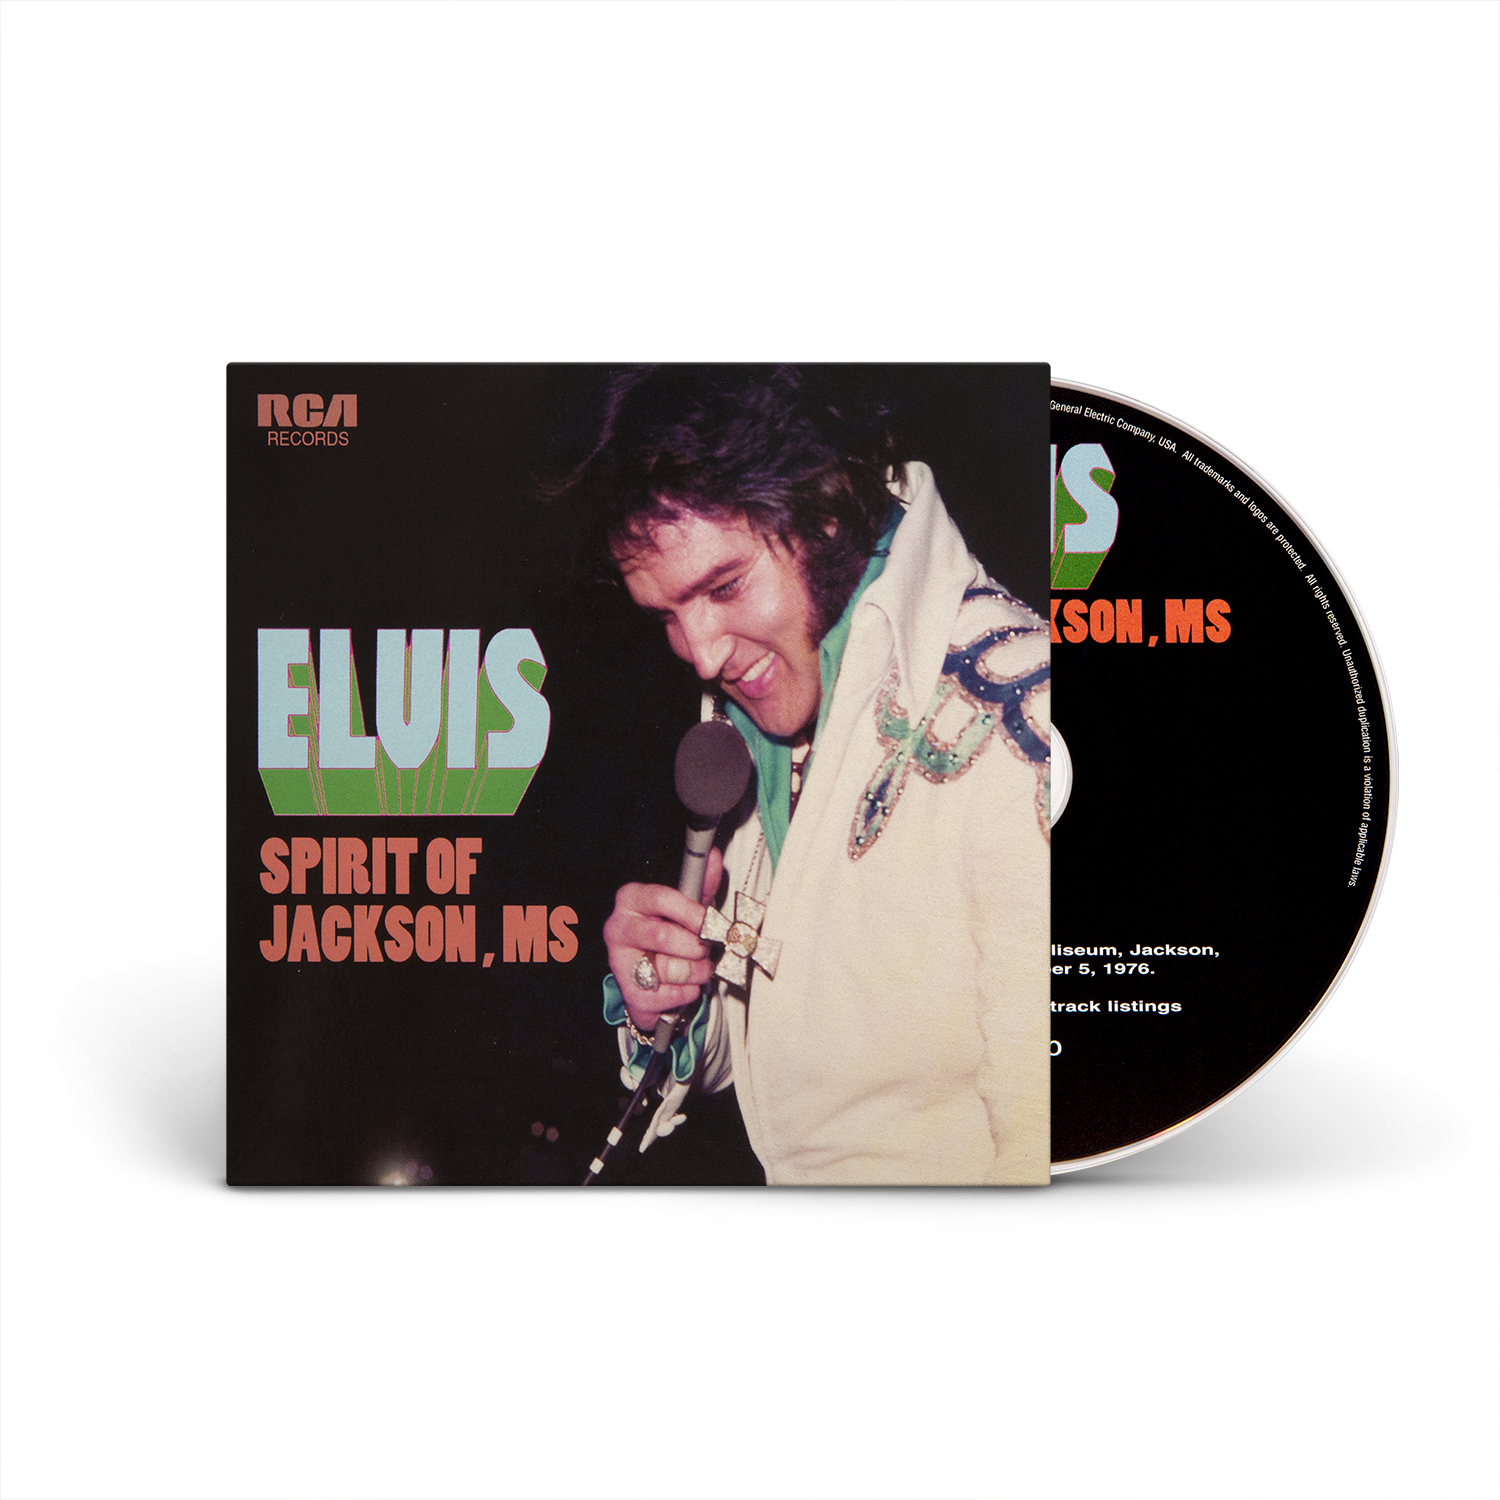 Elvis Spirit of Jackson, MS FTD 2-Disc CD